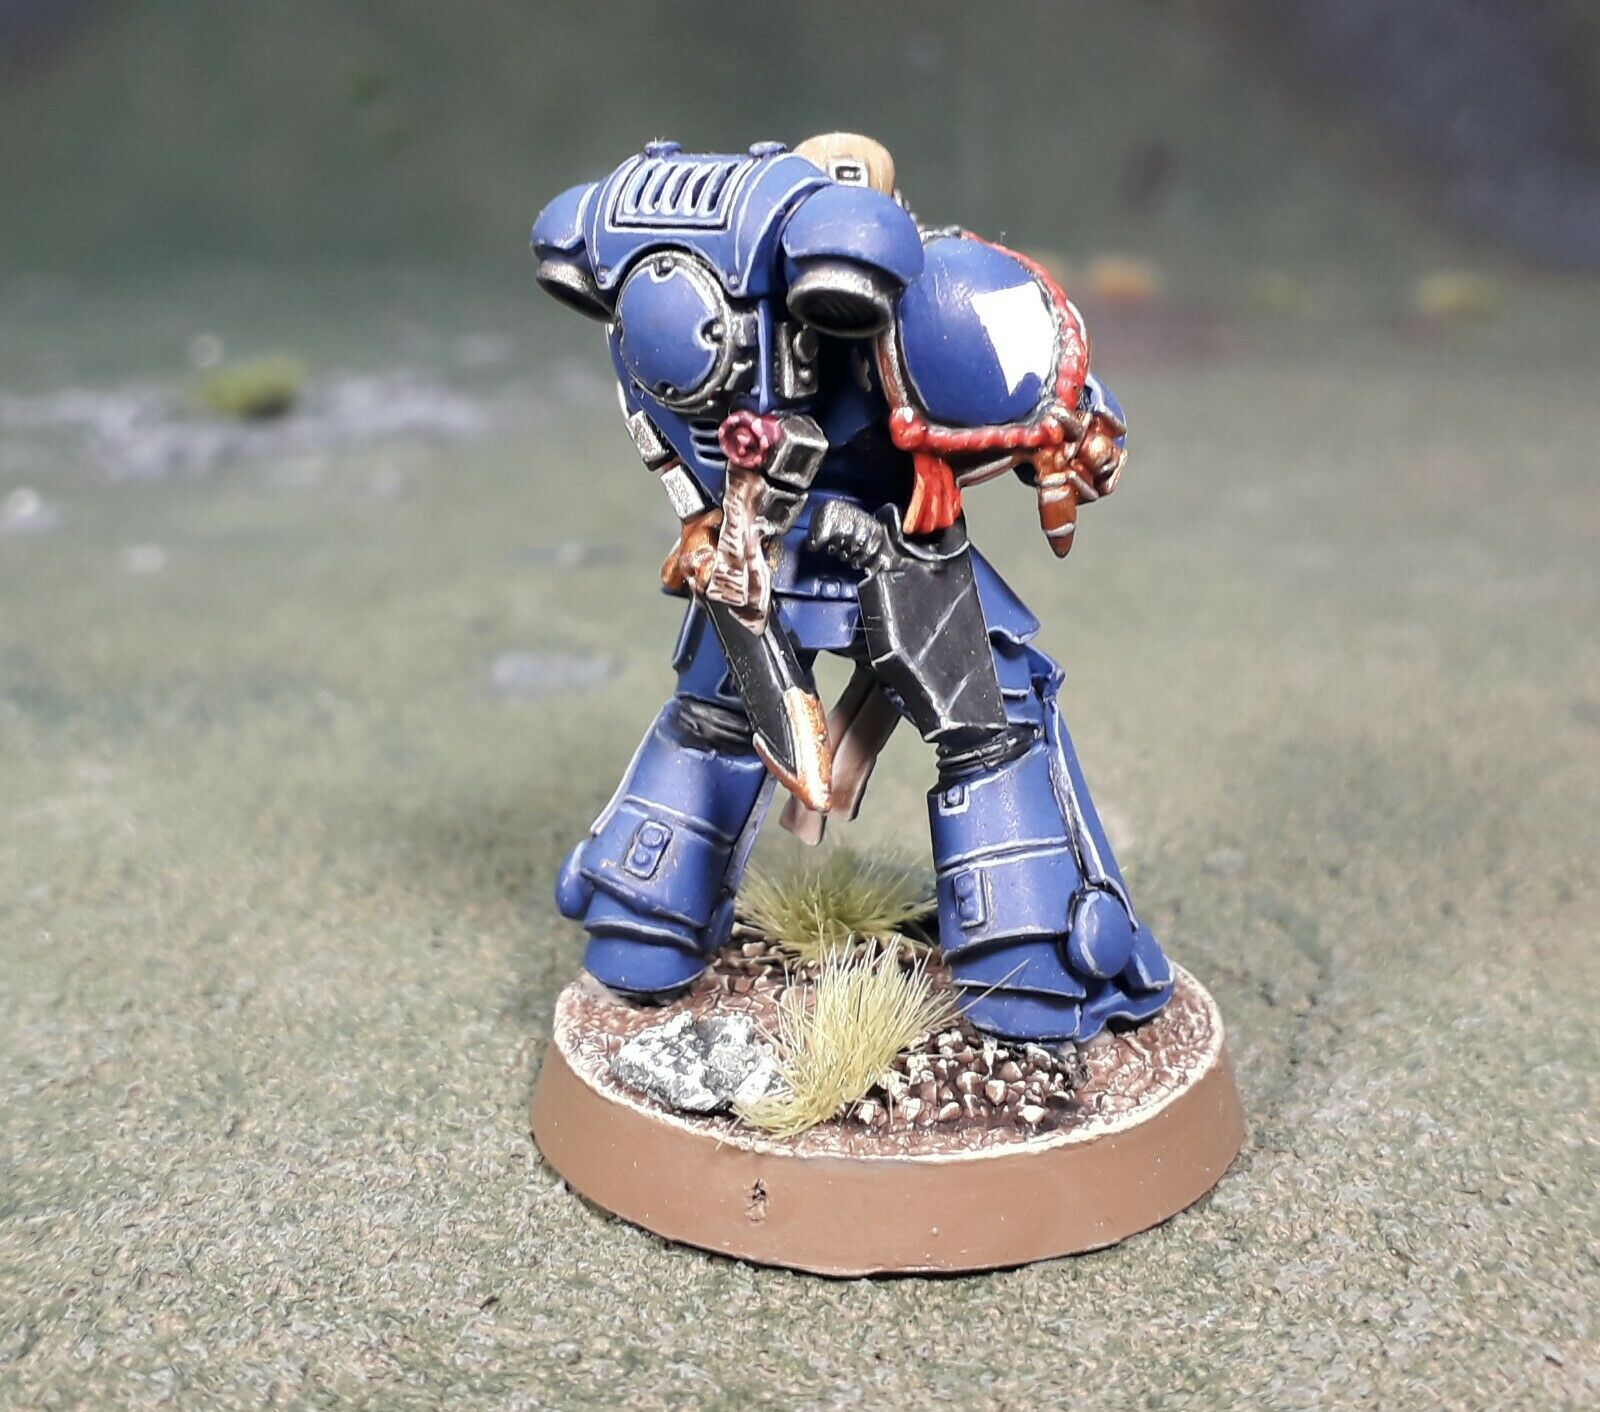 30 Years of Warhammer 40,000 Primaris Intercessor Veteran Sergeant Sergeant Sergeant c5a4c9